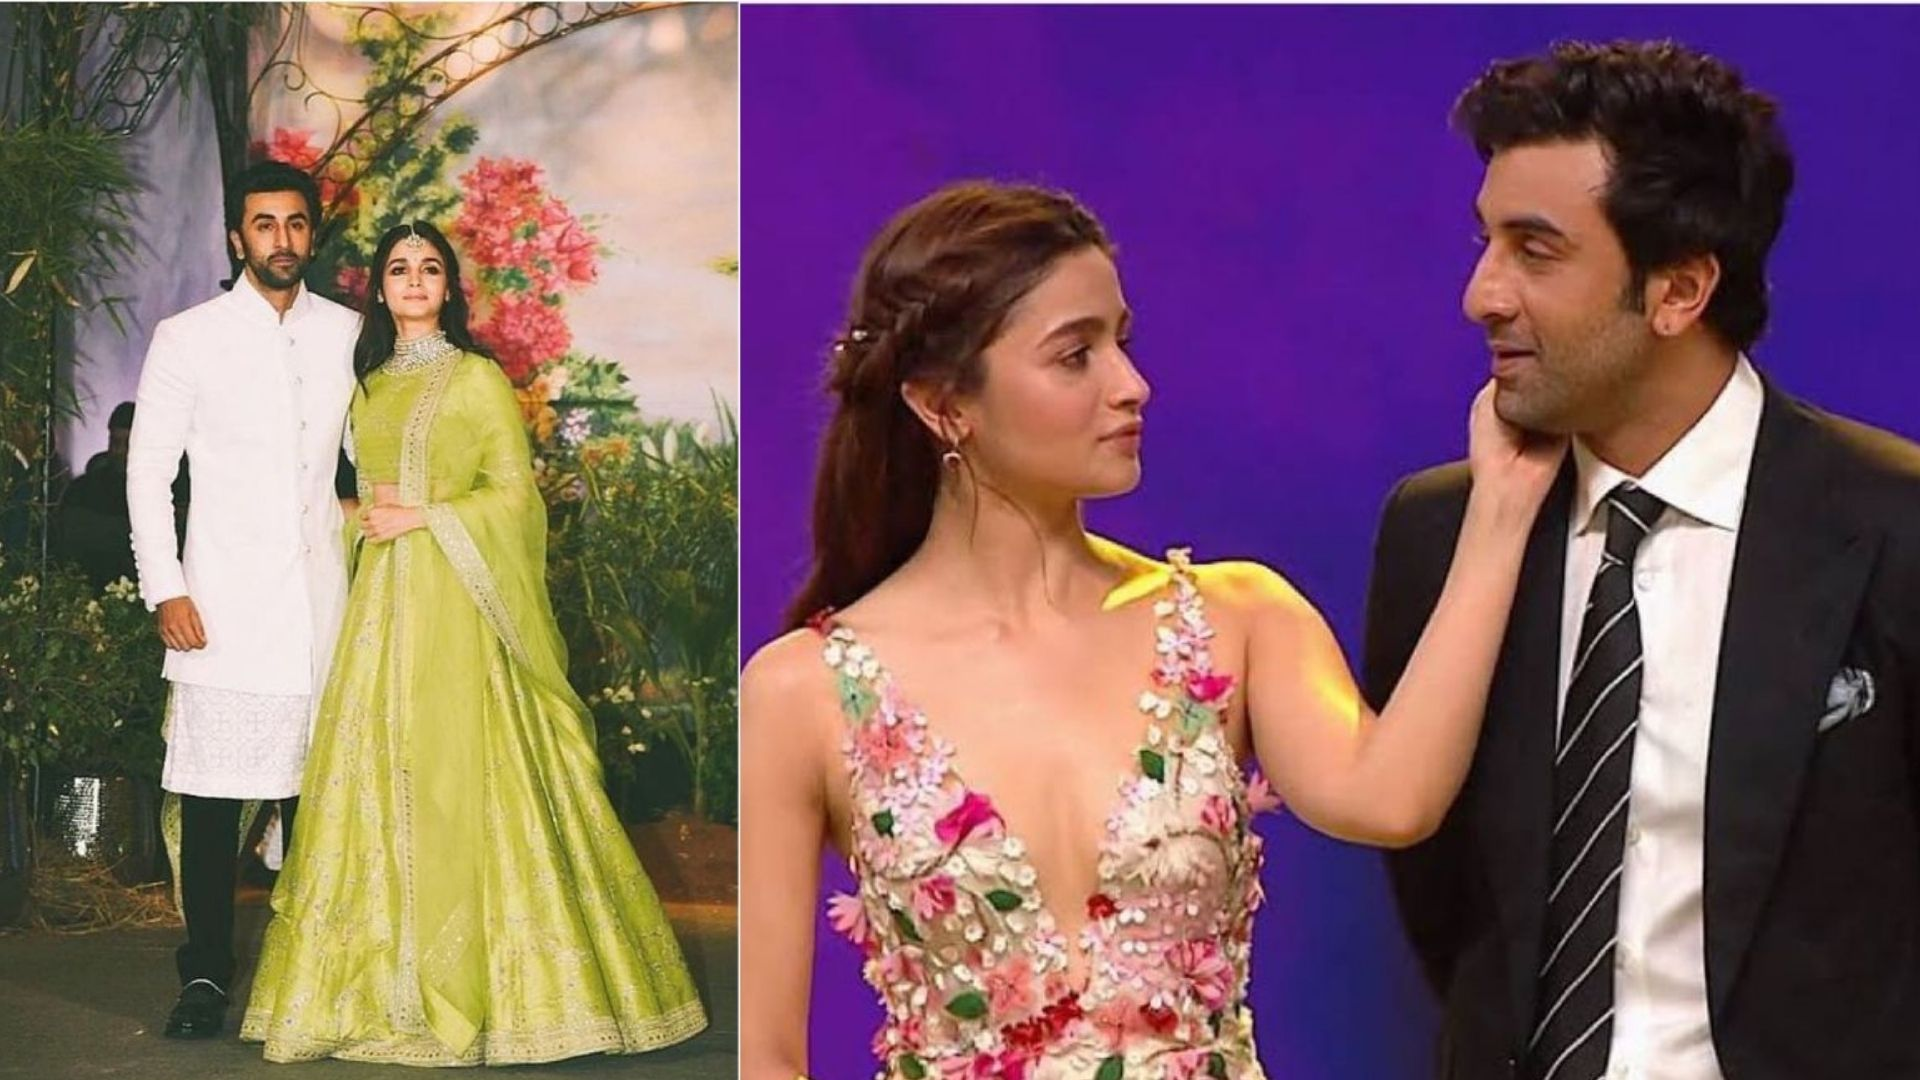 Times When Alia Bhatt Told The World About Her Love For Ranbir Kapoor